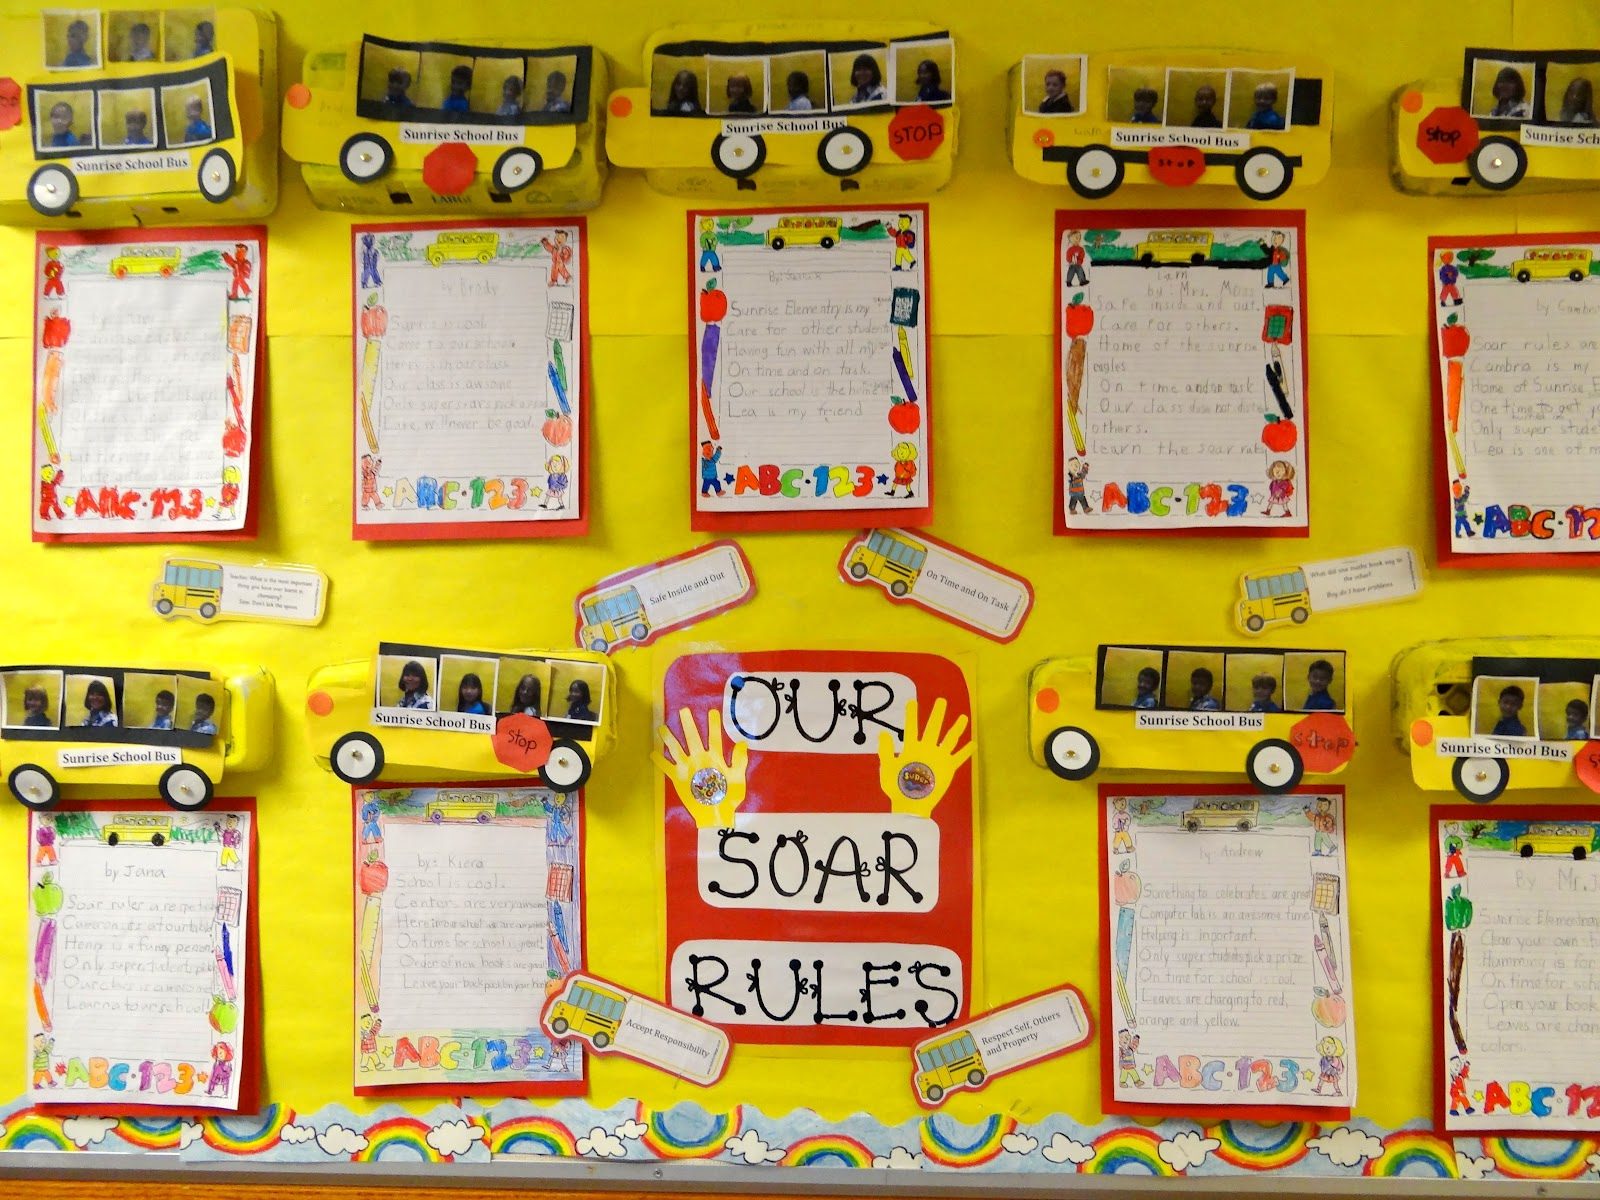 Patties Classroom Rules Of The School School Bus Project